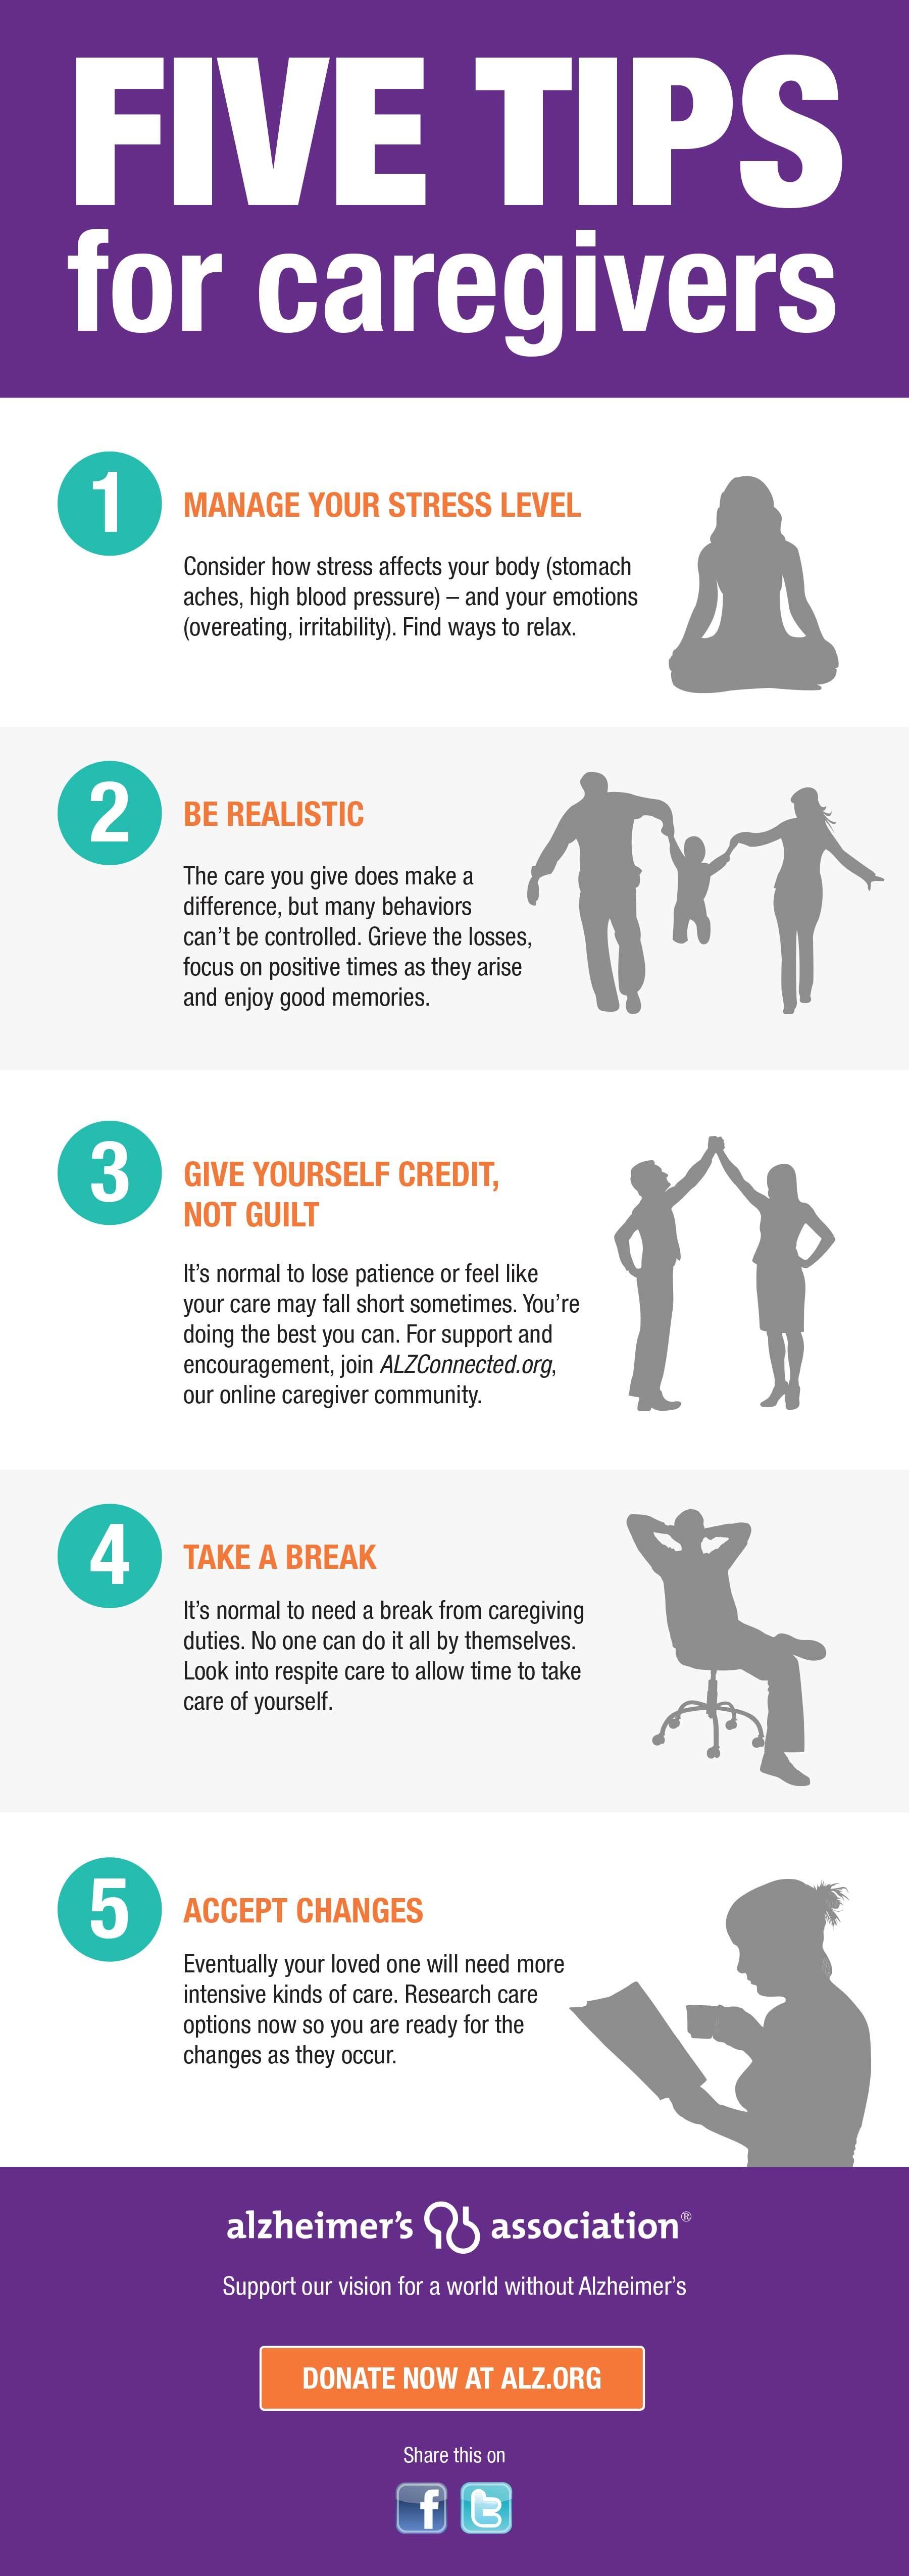 5 tips for caregivers alzheimers caregiver and dementia